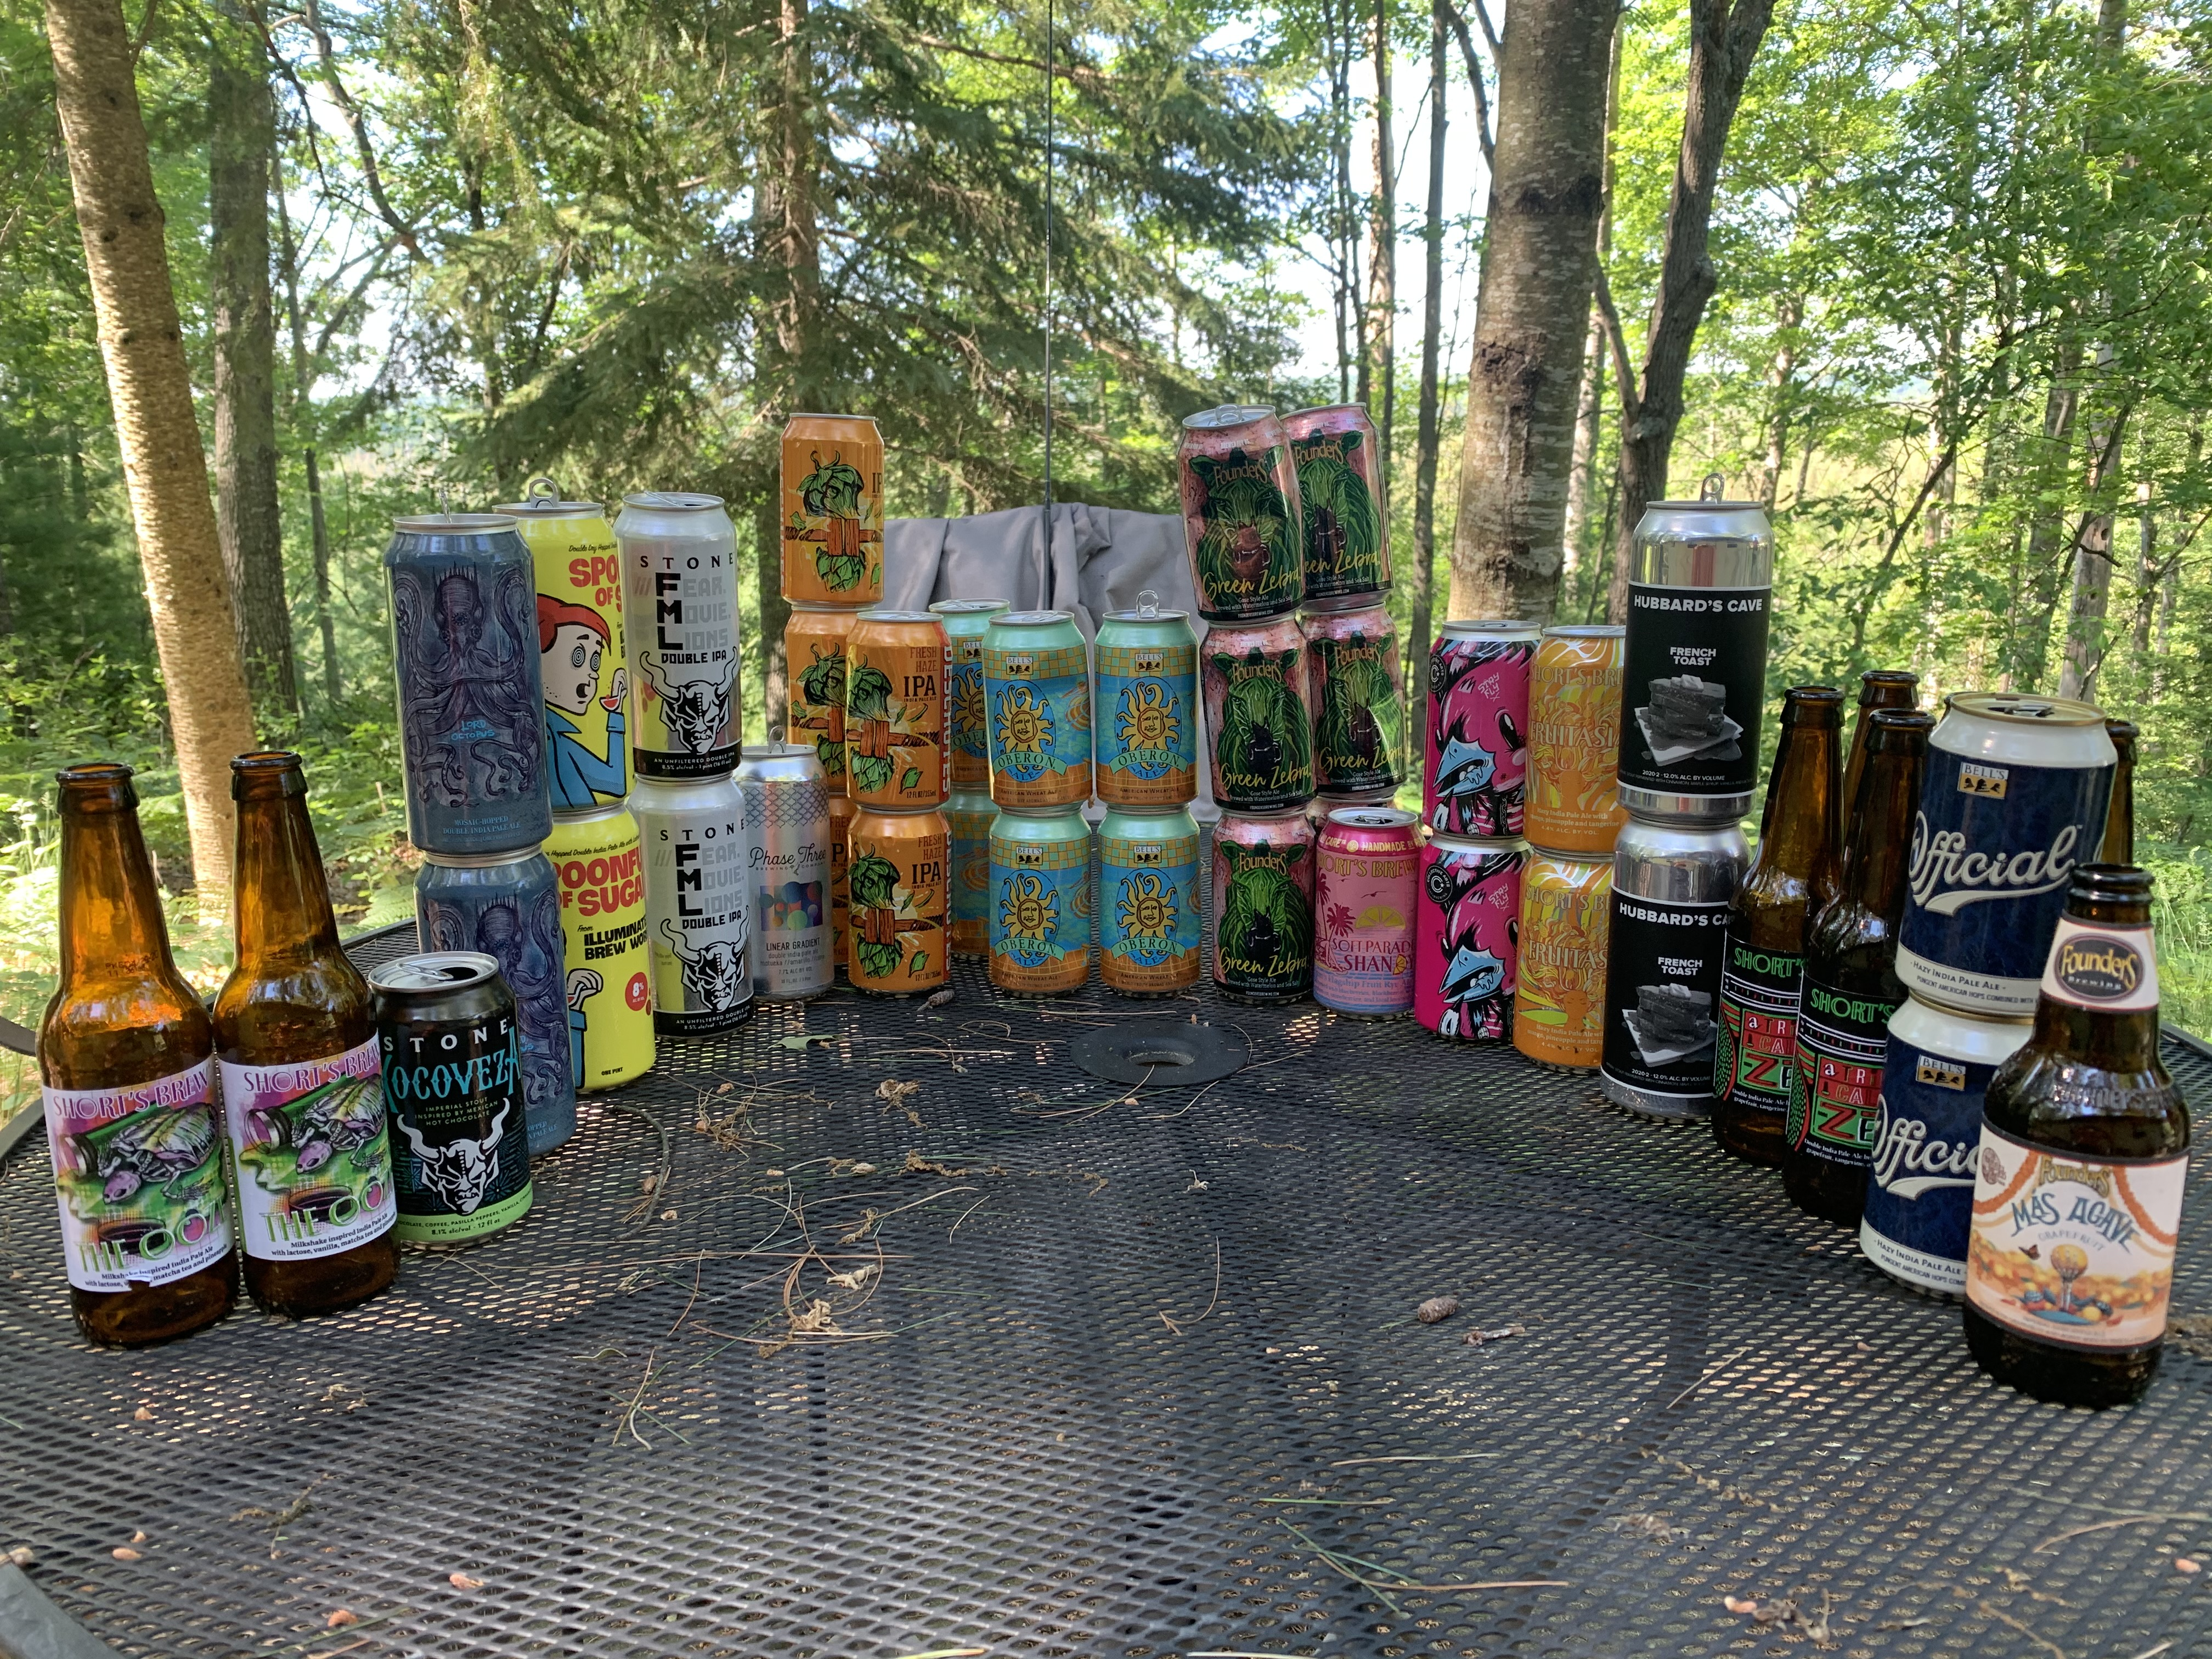 The Beer Display, lovingly created by Todd